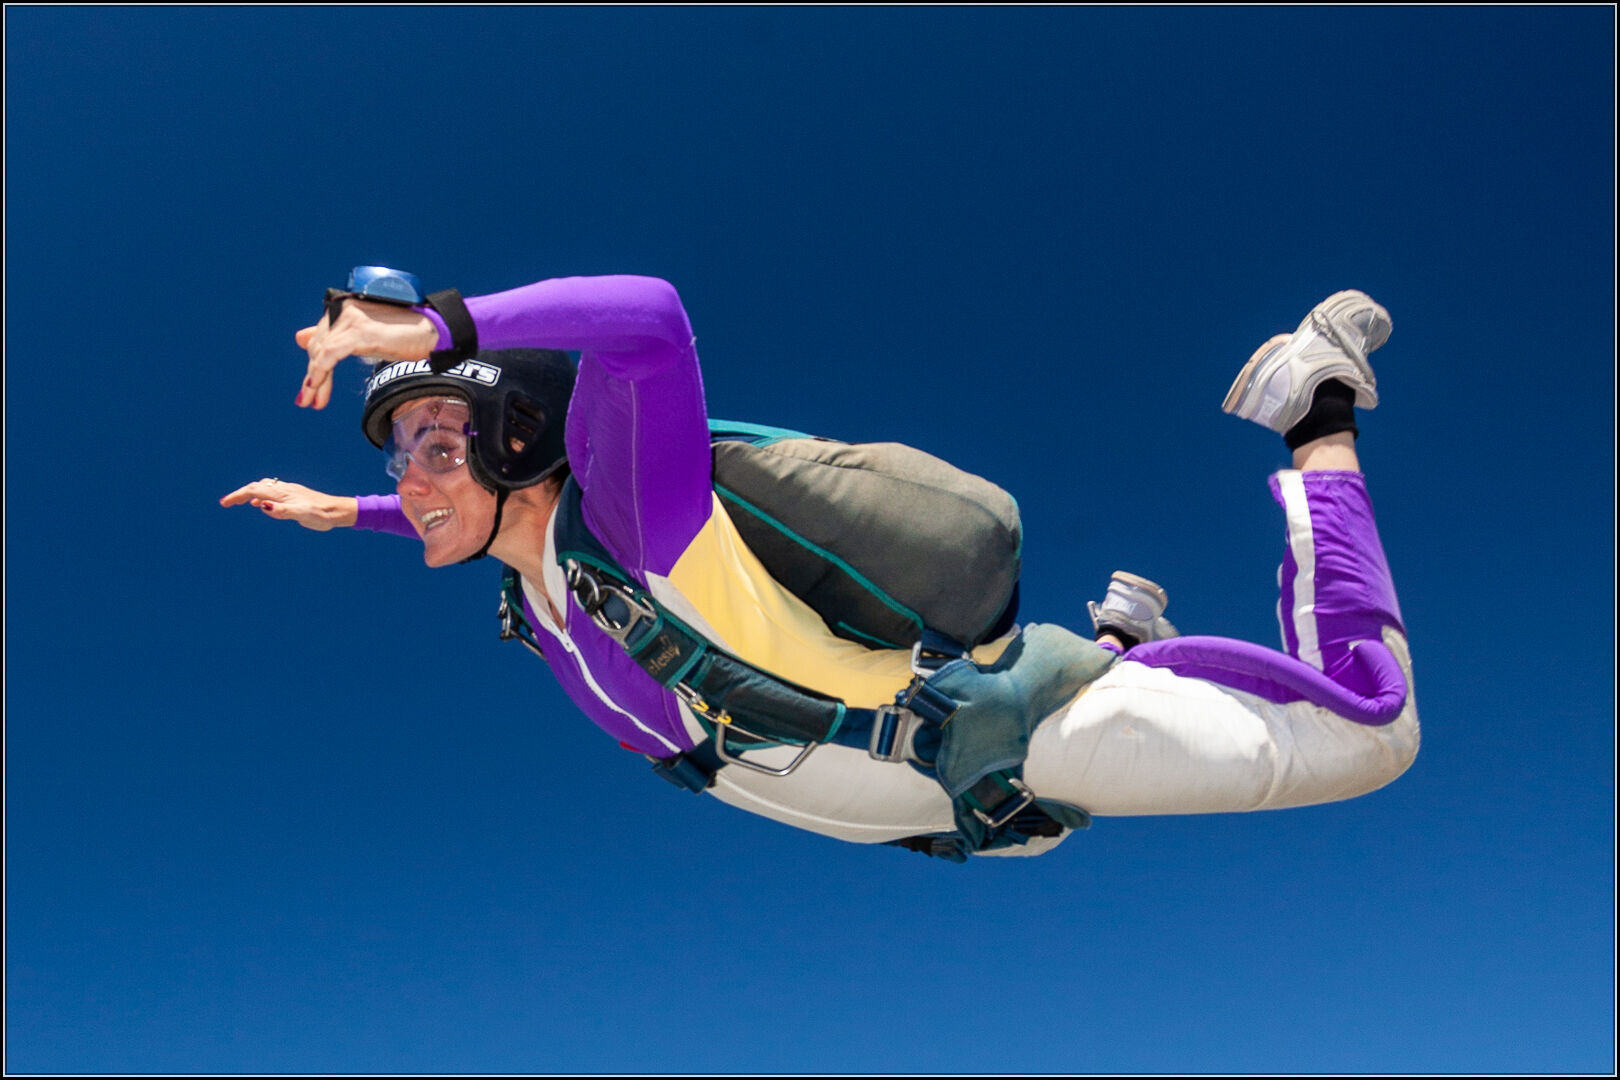 accelerated_freefall_skydiving